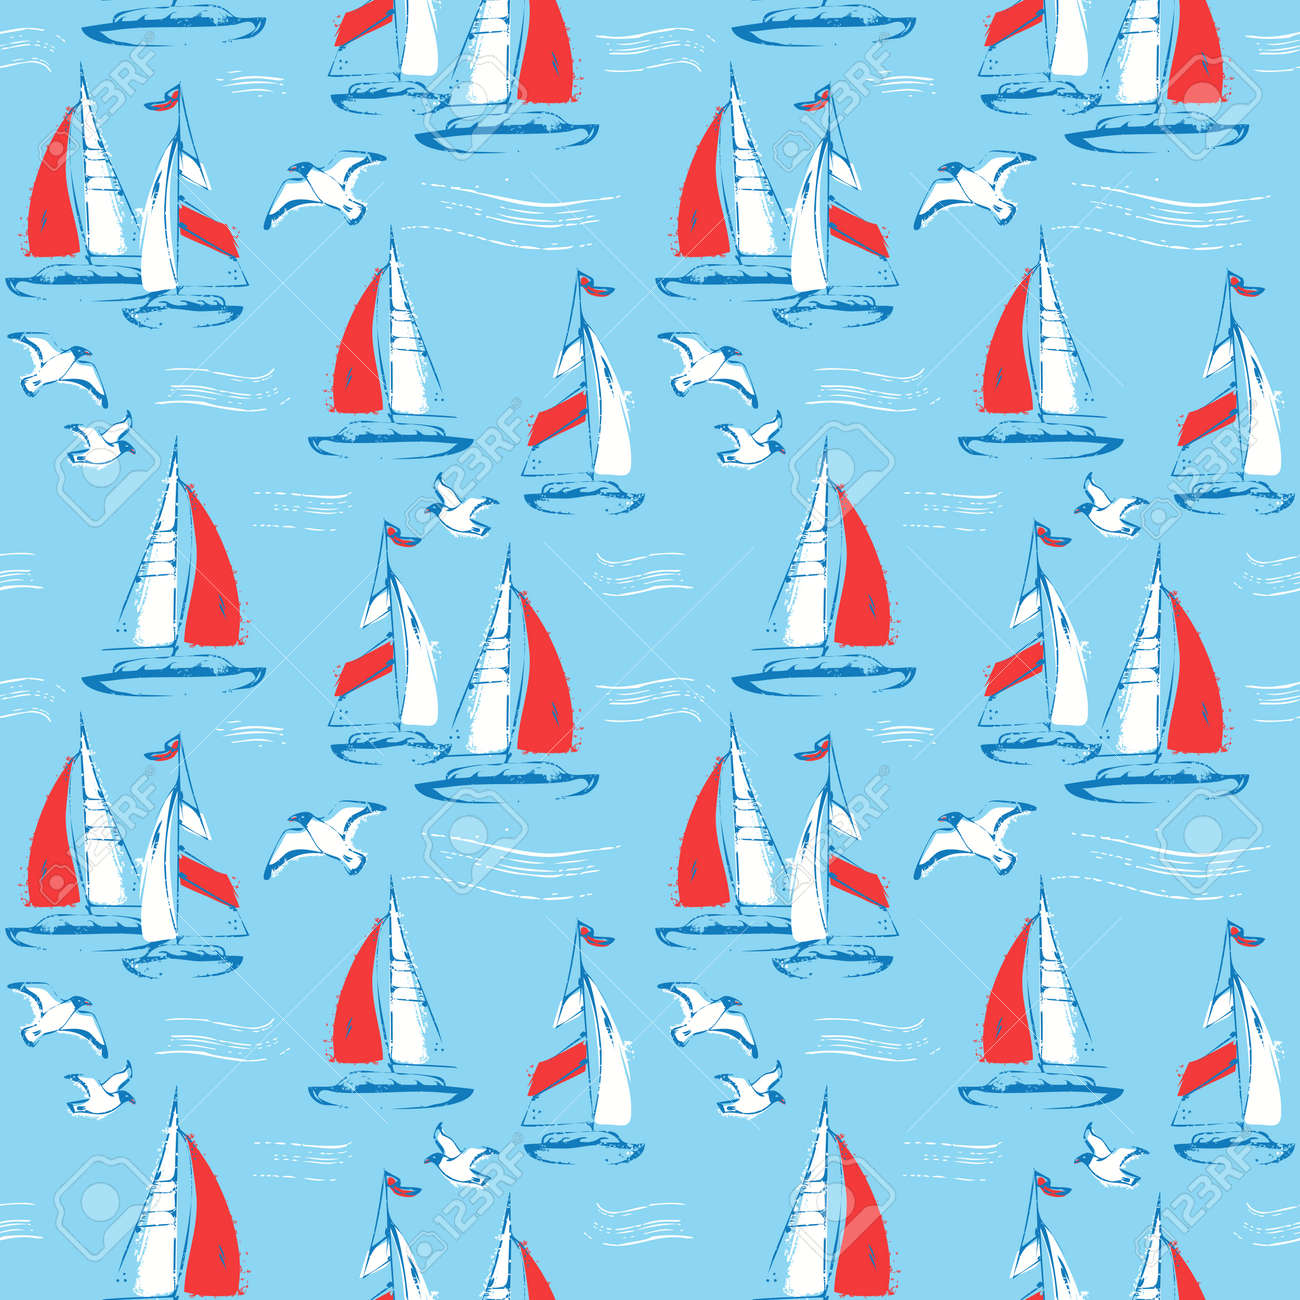 Nautical seamless pattern with sail boats and seagulls. Sea background. Vector illustration. - 171146585